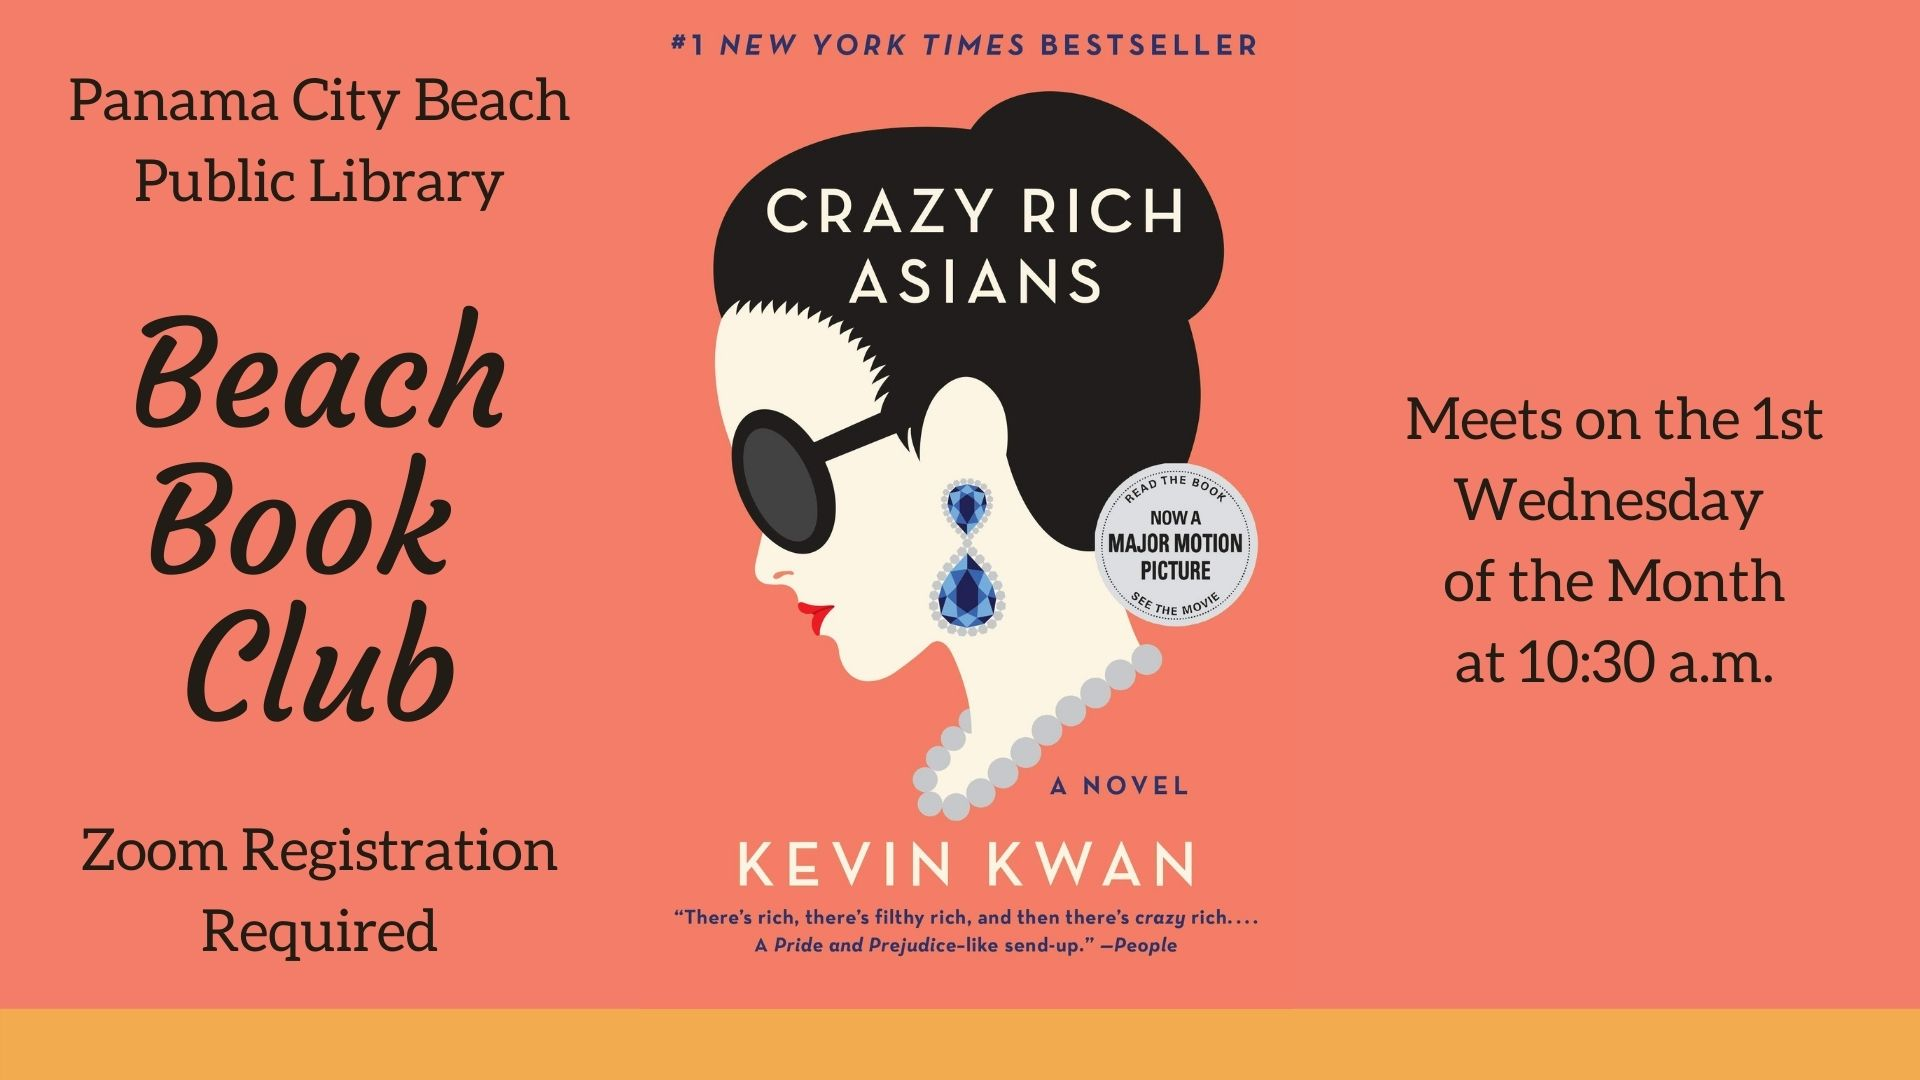 October Book Club read is Crazy Rich Asians by Kevin Kwan